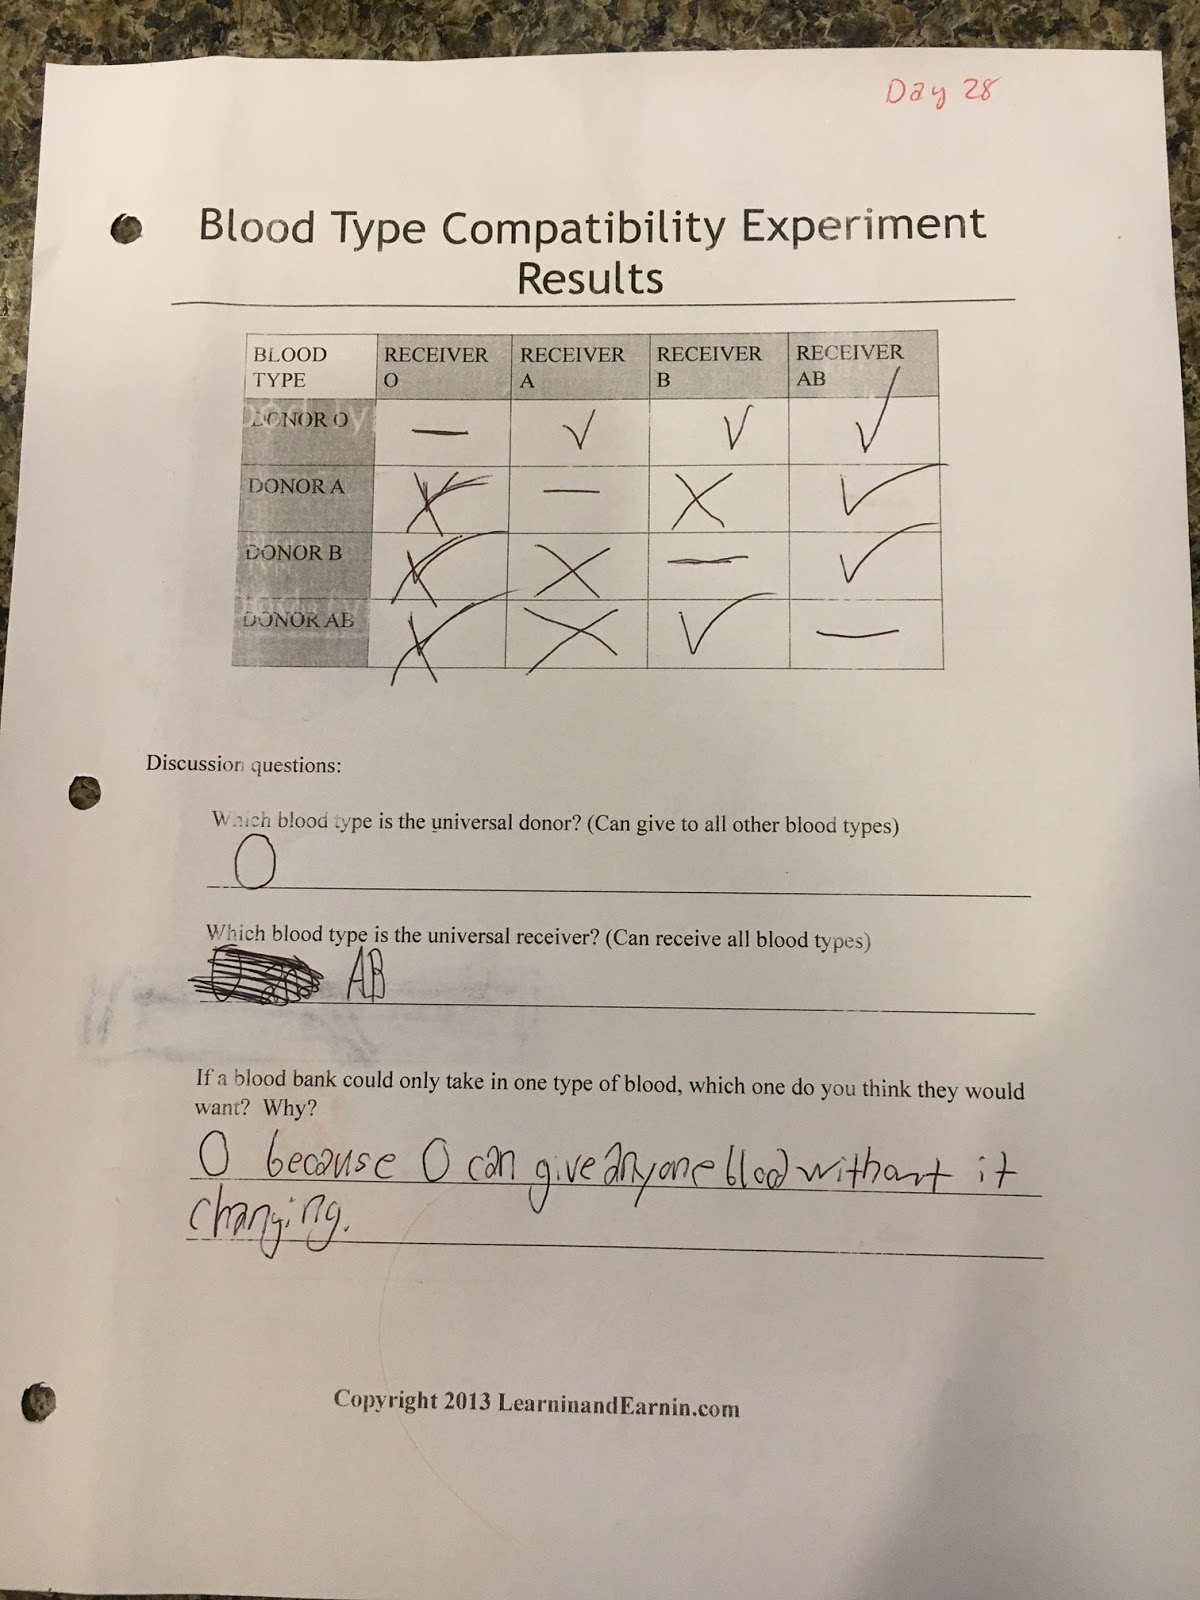 Is Your Blood Type Compatible